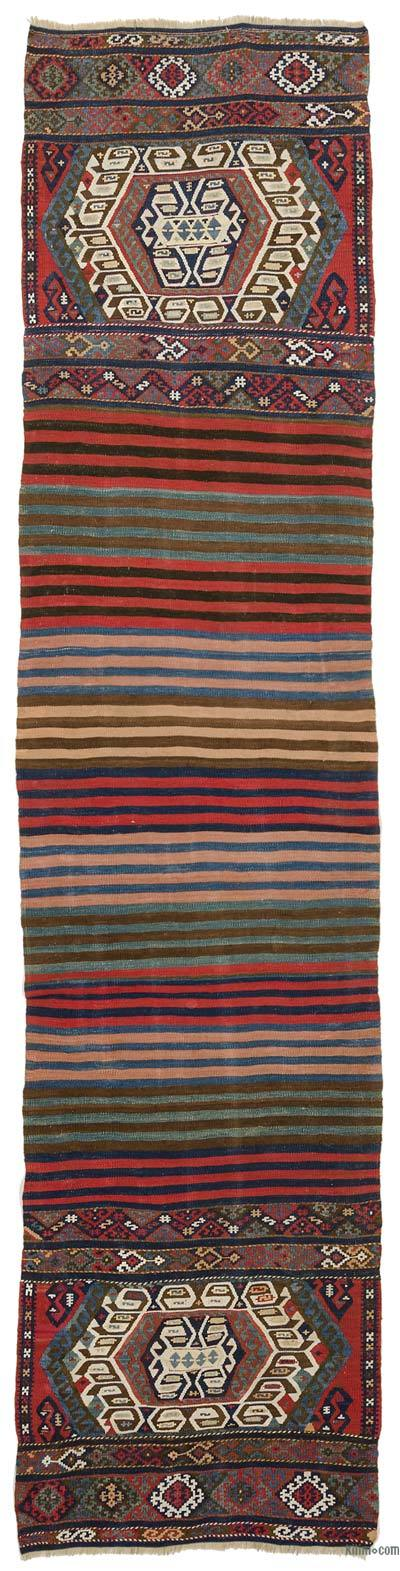 "Antique Malatya Kilim Runner - 2' 5"" x 10'  (29 in. x 120 in.)"